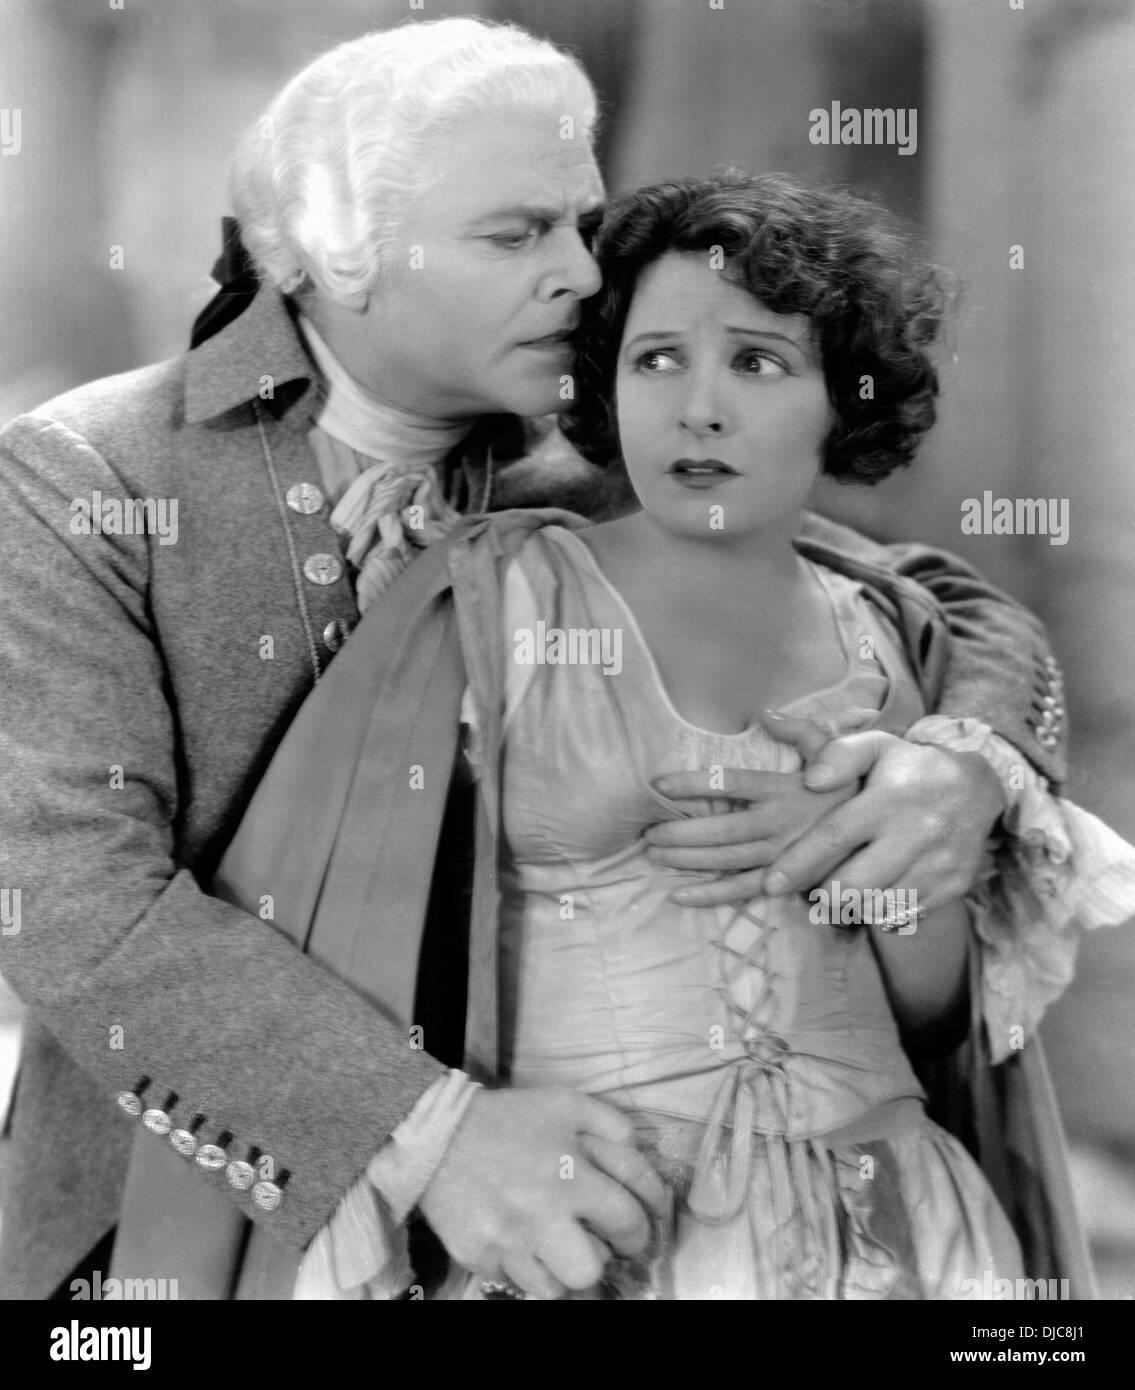 William Farnum and Norma Talmadge on-set of the Film, Du Barry, Woman of Passion, 1930 - Stock Image